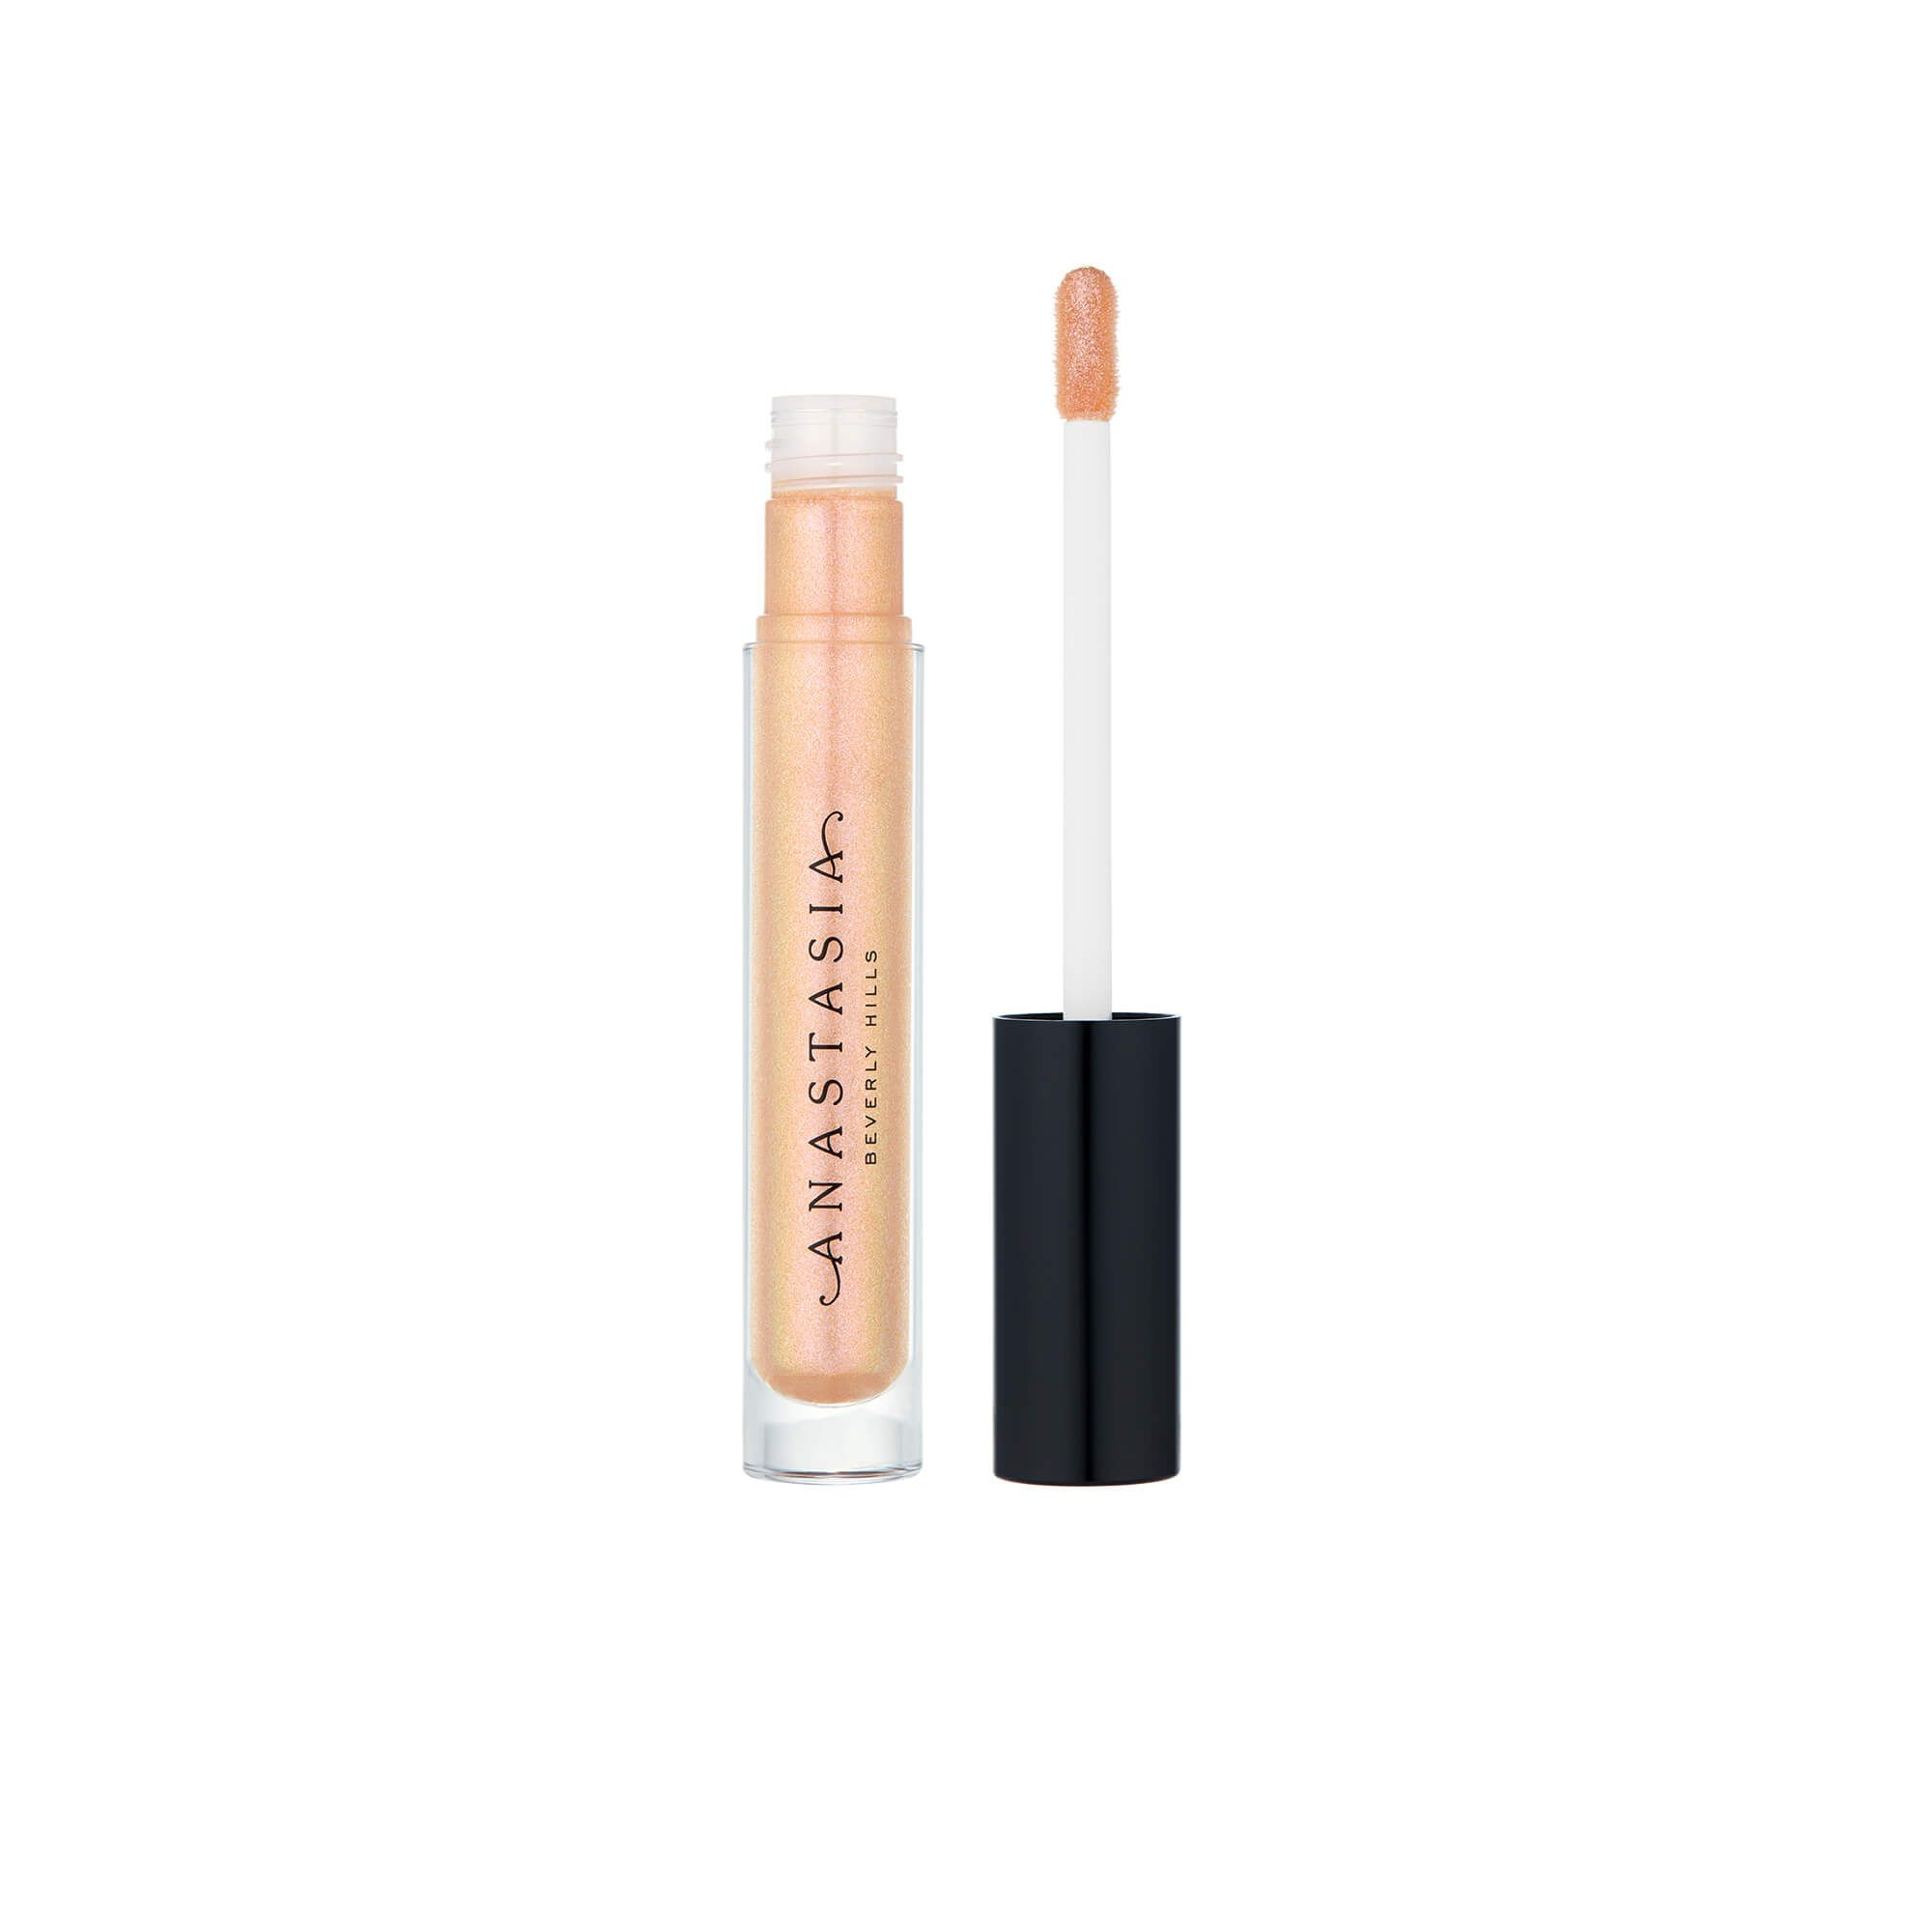 An opaque, high-shine lip color. This vanilla-scented, non-drying formula can be worn alone or